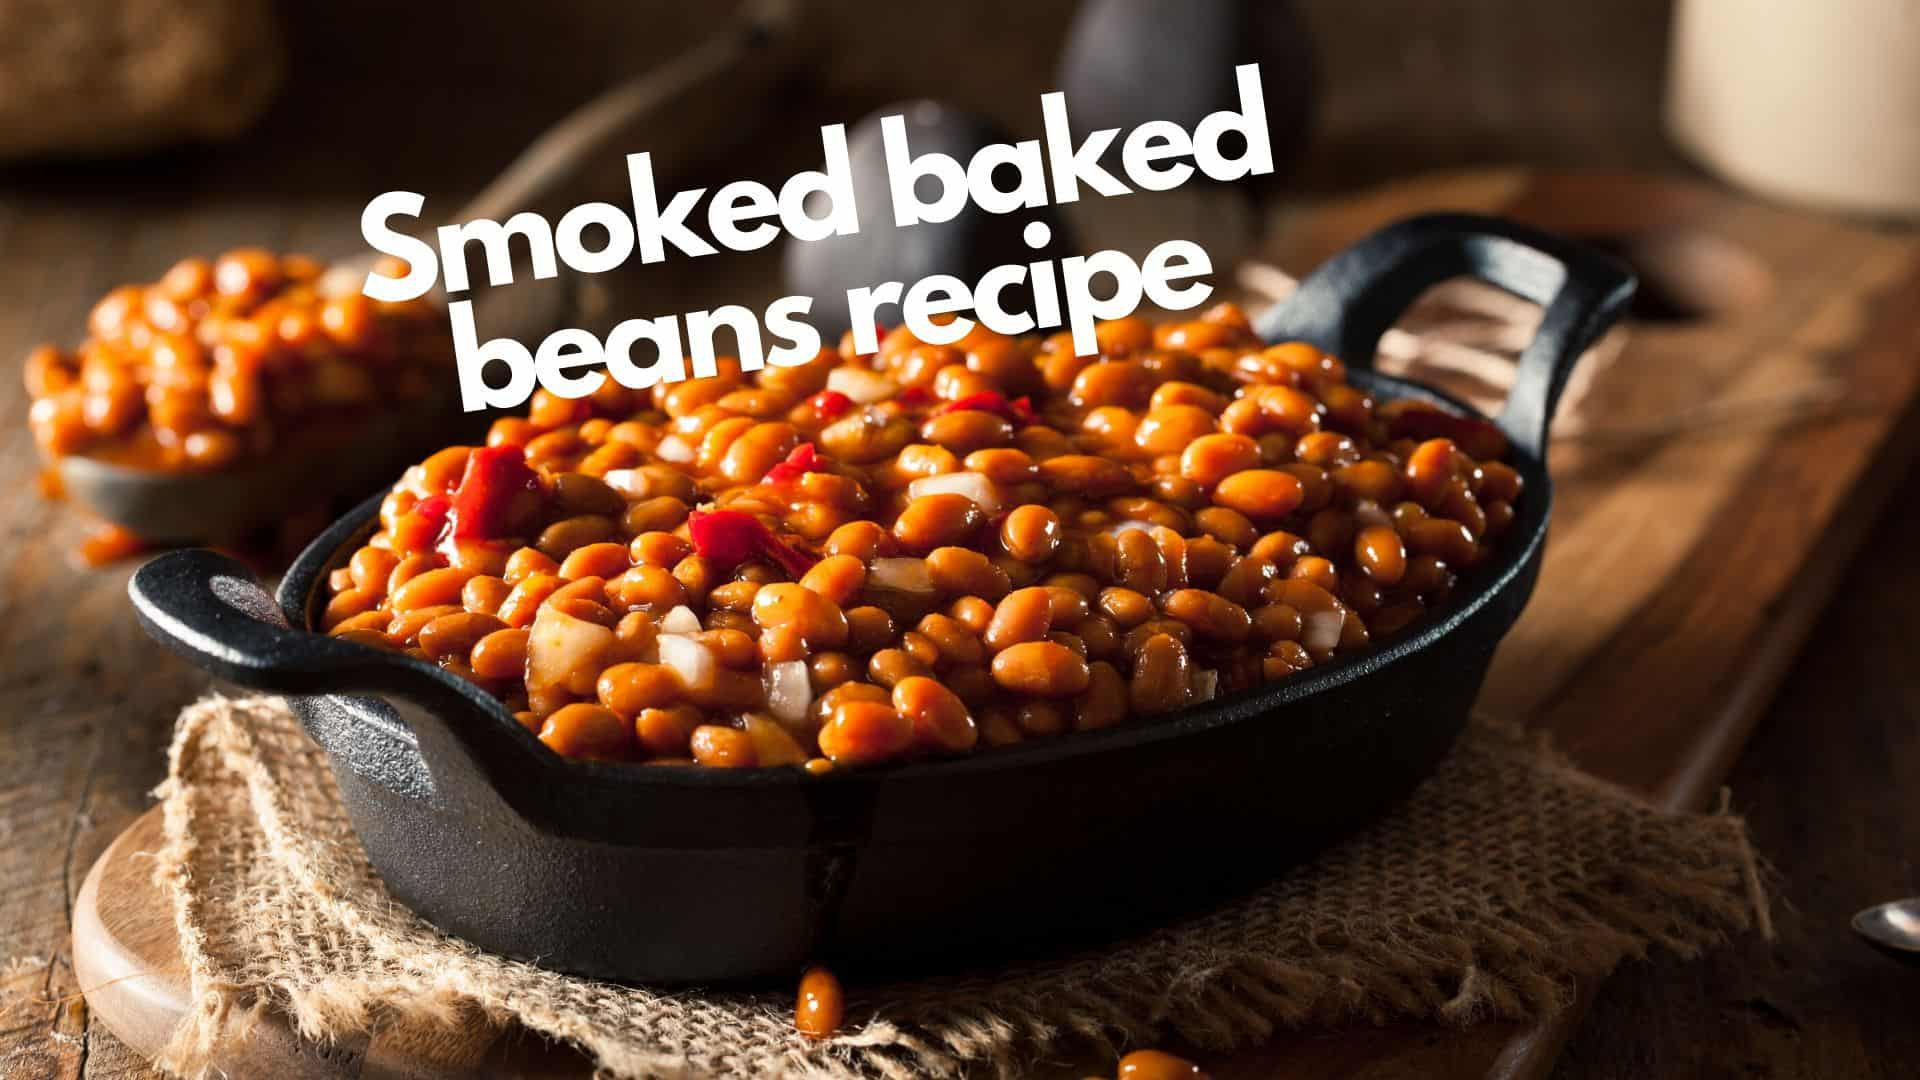 Best wood for smoking baked beans